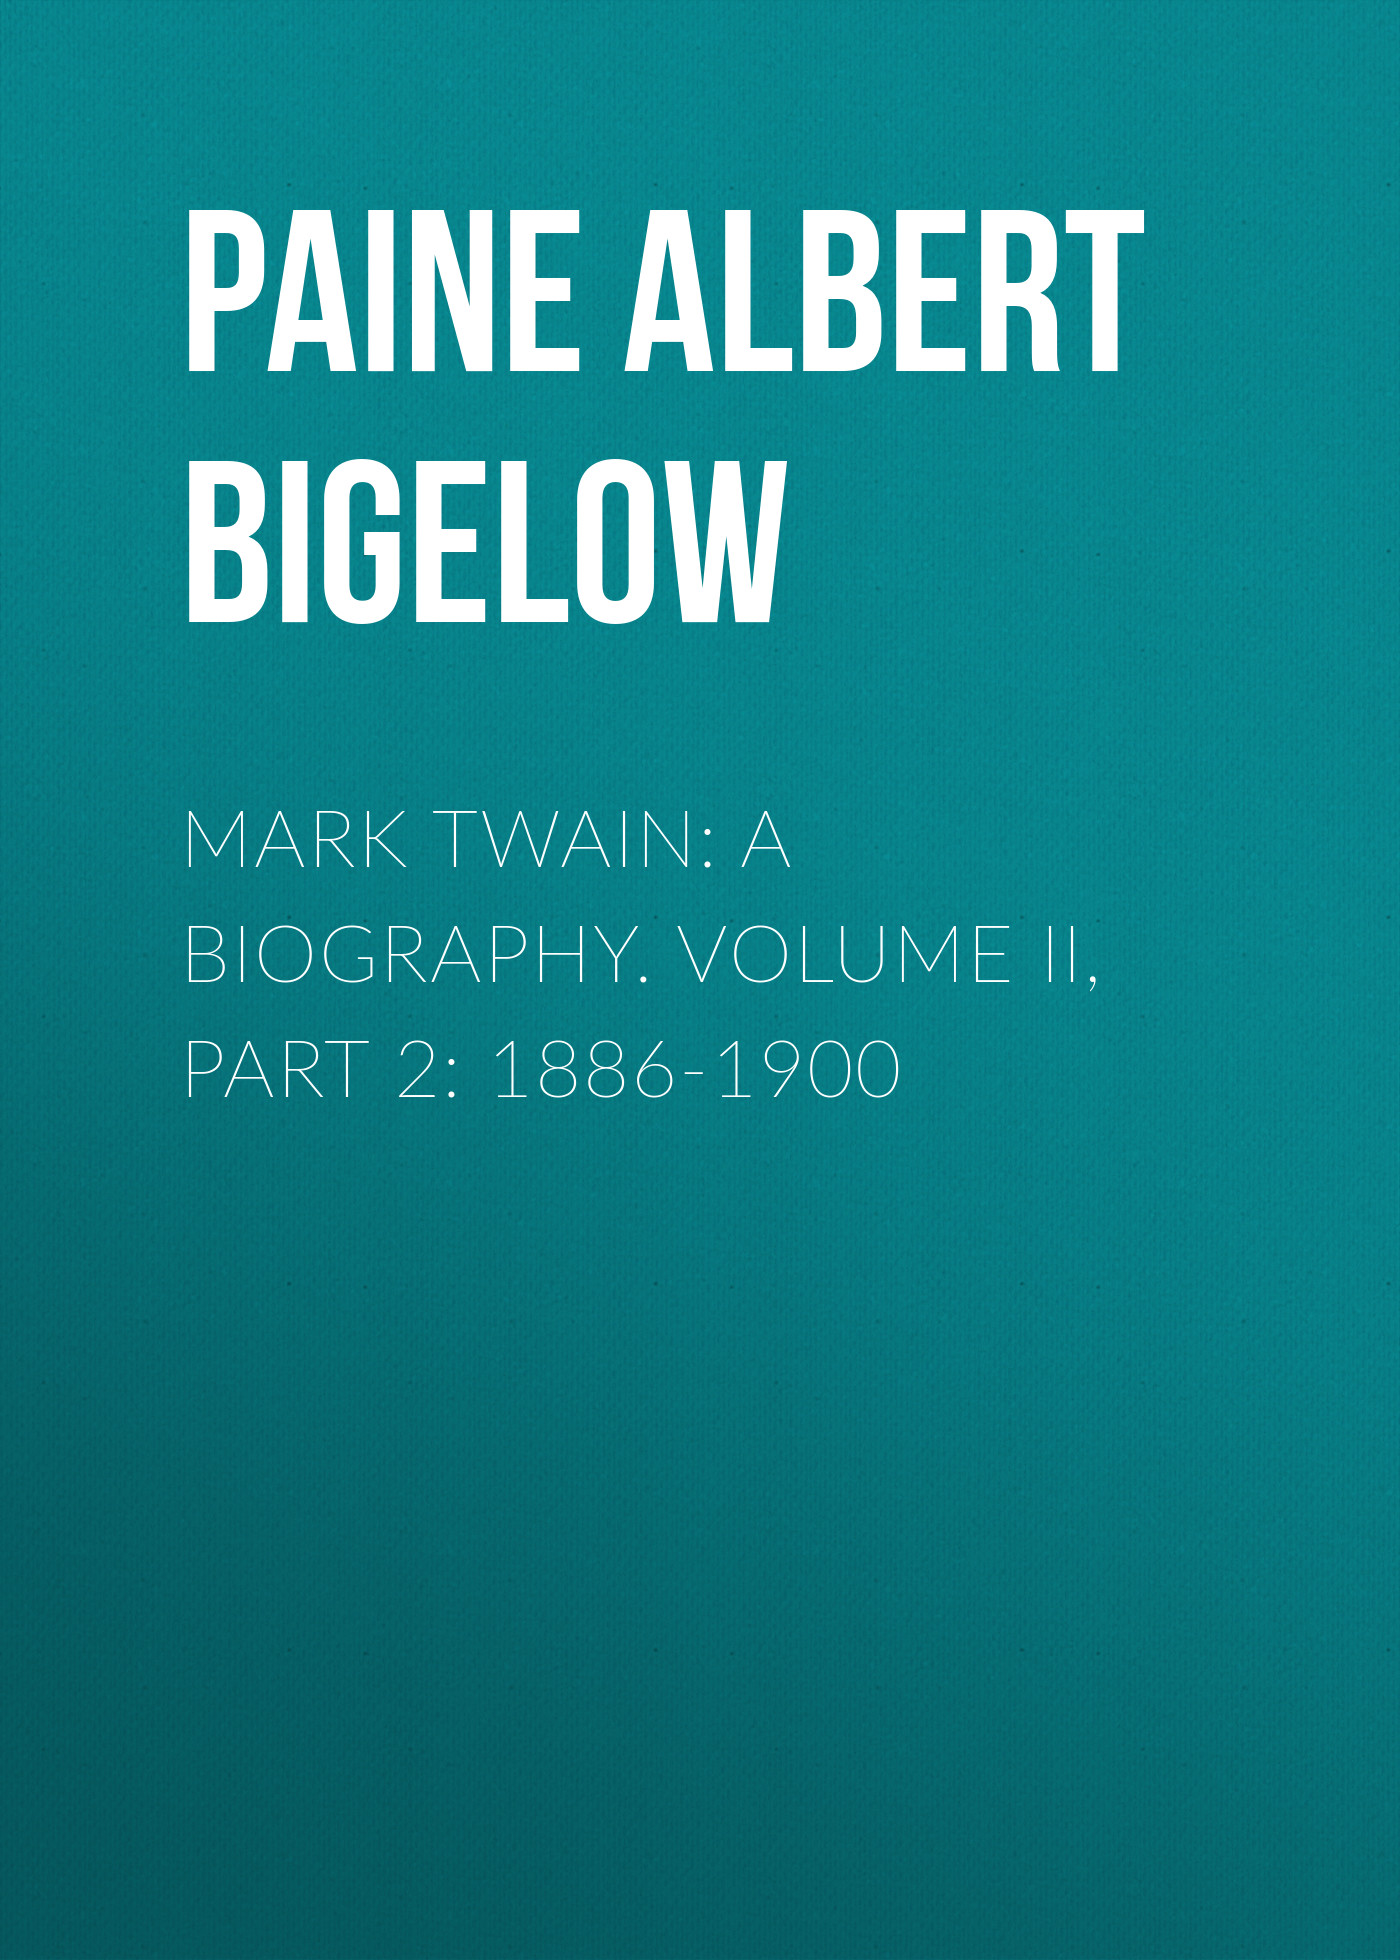 Фото - Paine Albert Bigelow Mark Twain: A Biography. Volume II, Part 2: 1886-1900 paine albert bigelow mark twain a biography volume ii part 1 1886 1900